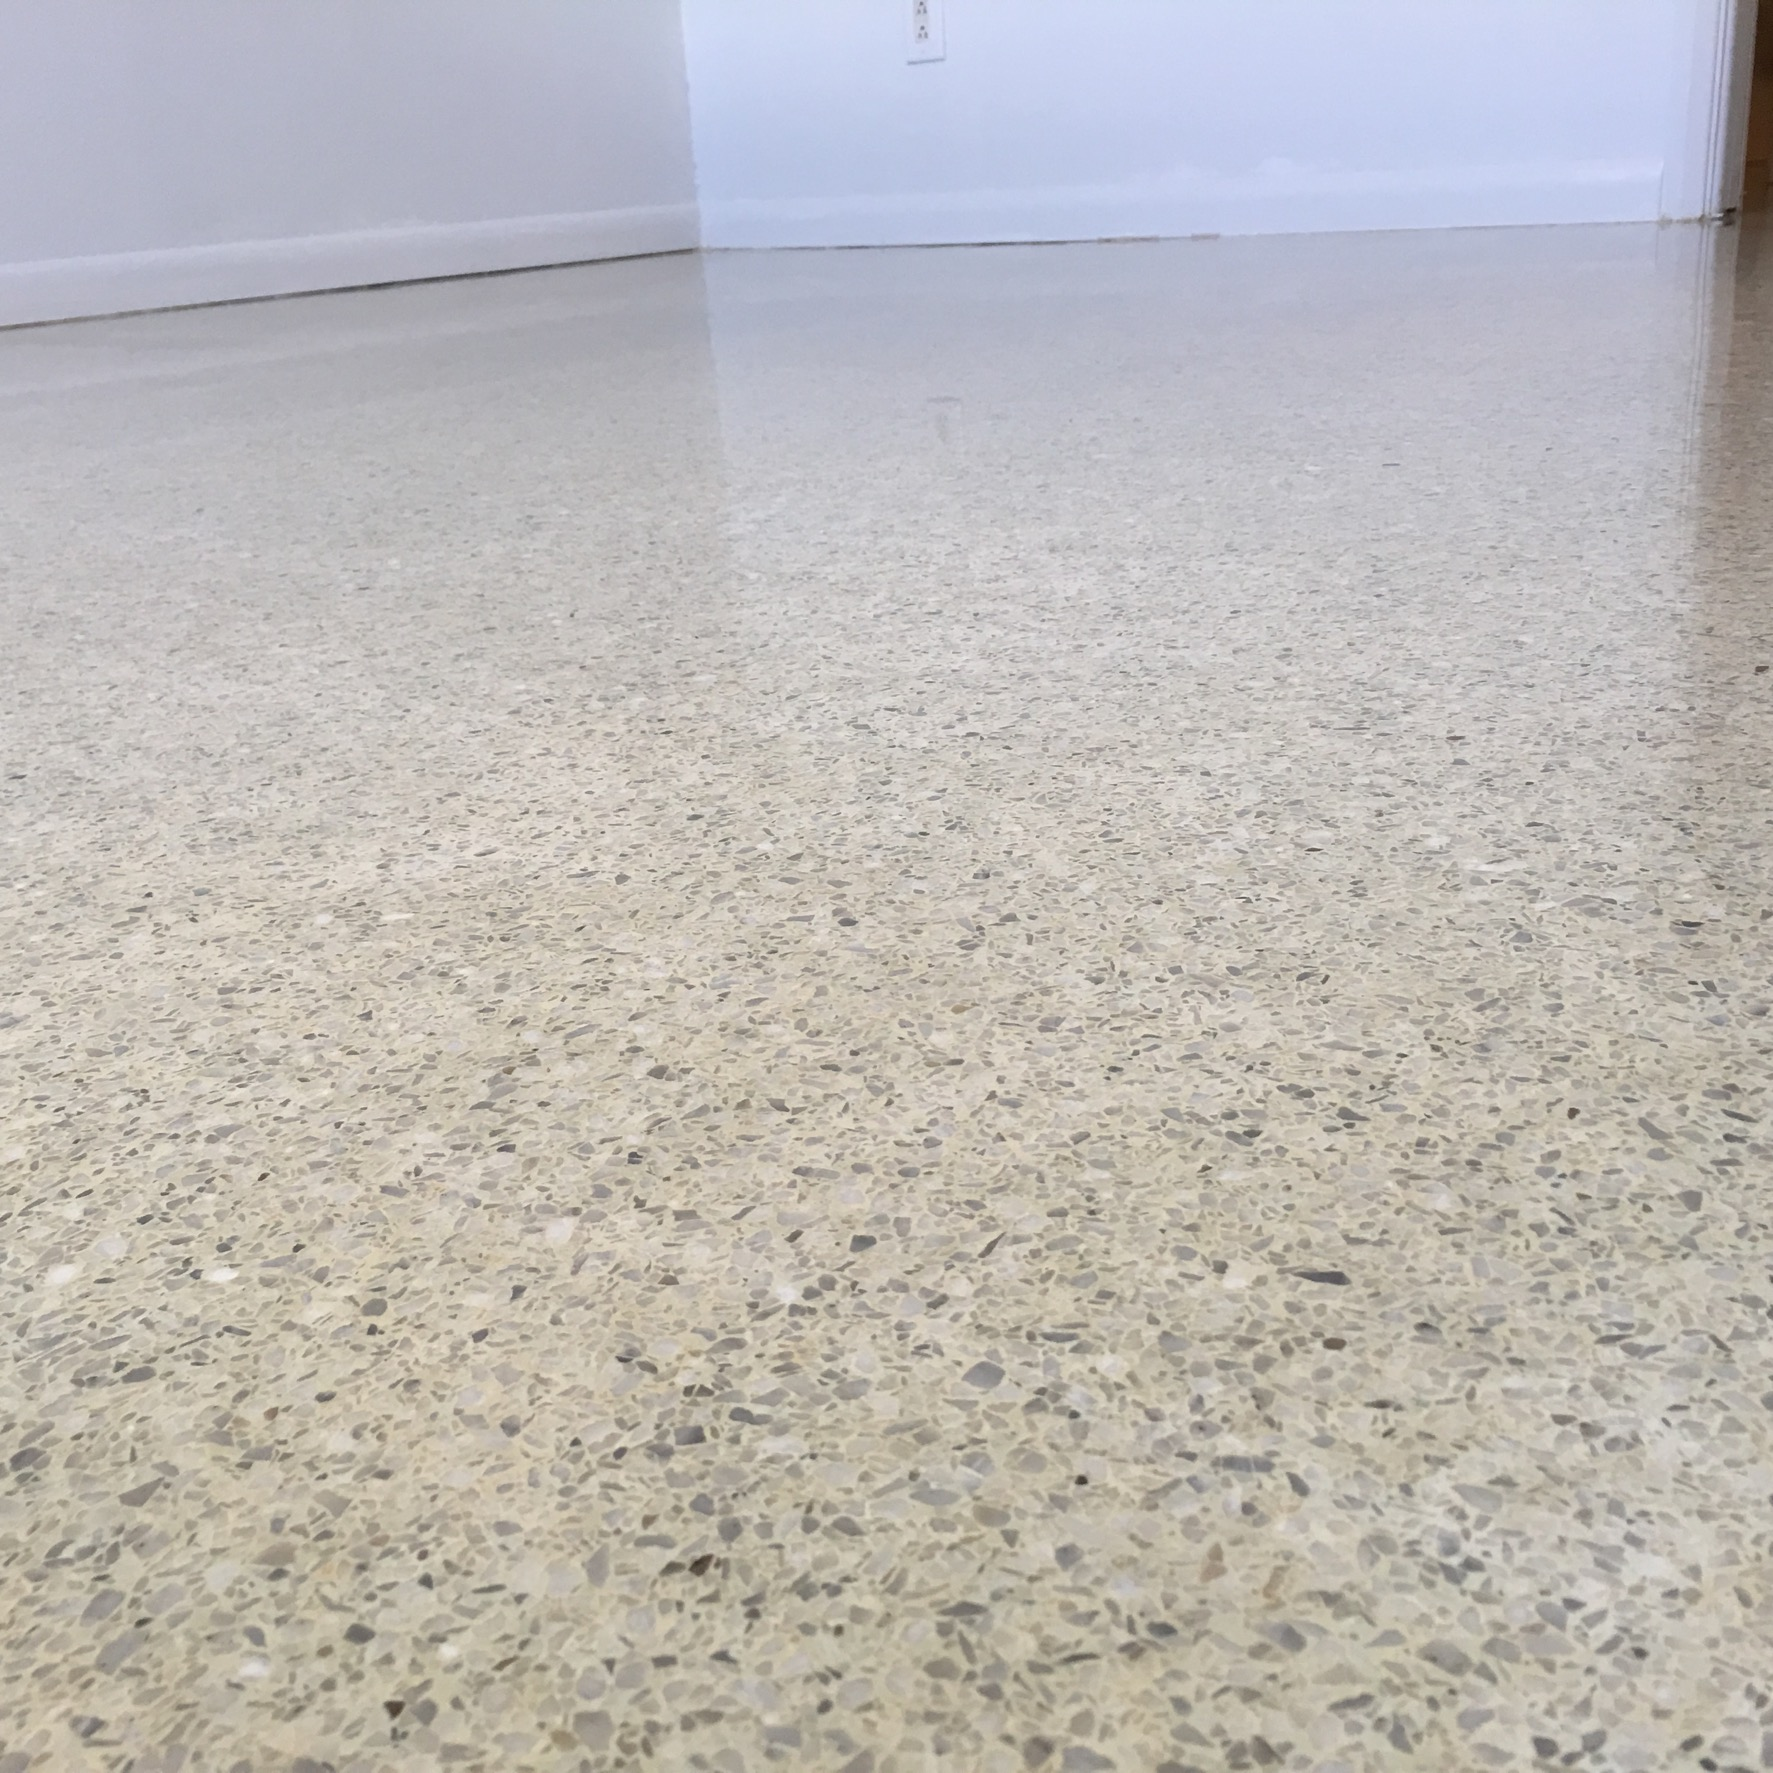 Cleaning Terrazzo Floors How To Clean Terrazzo Floors Terrazzo - How to clean and polish terrazzo floors